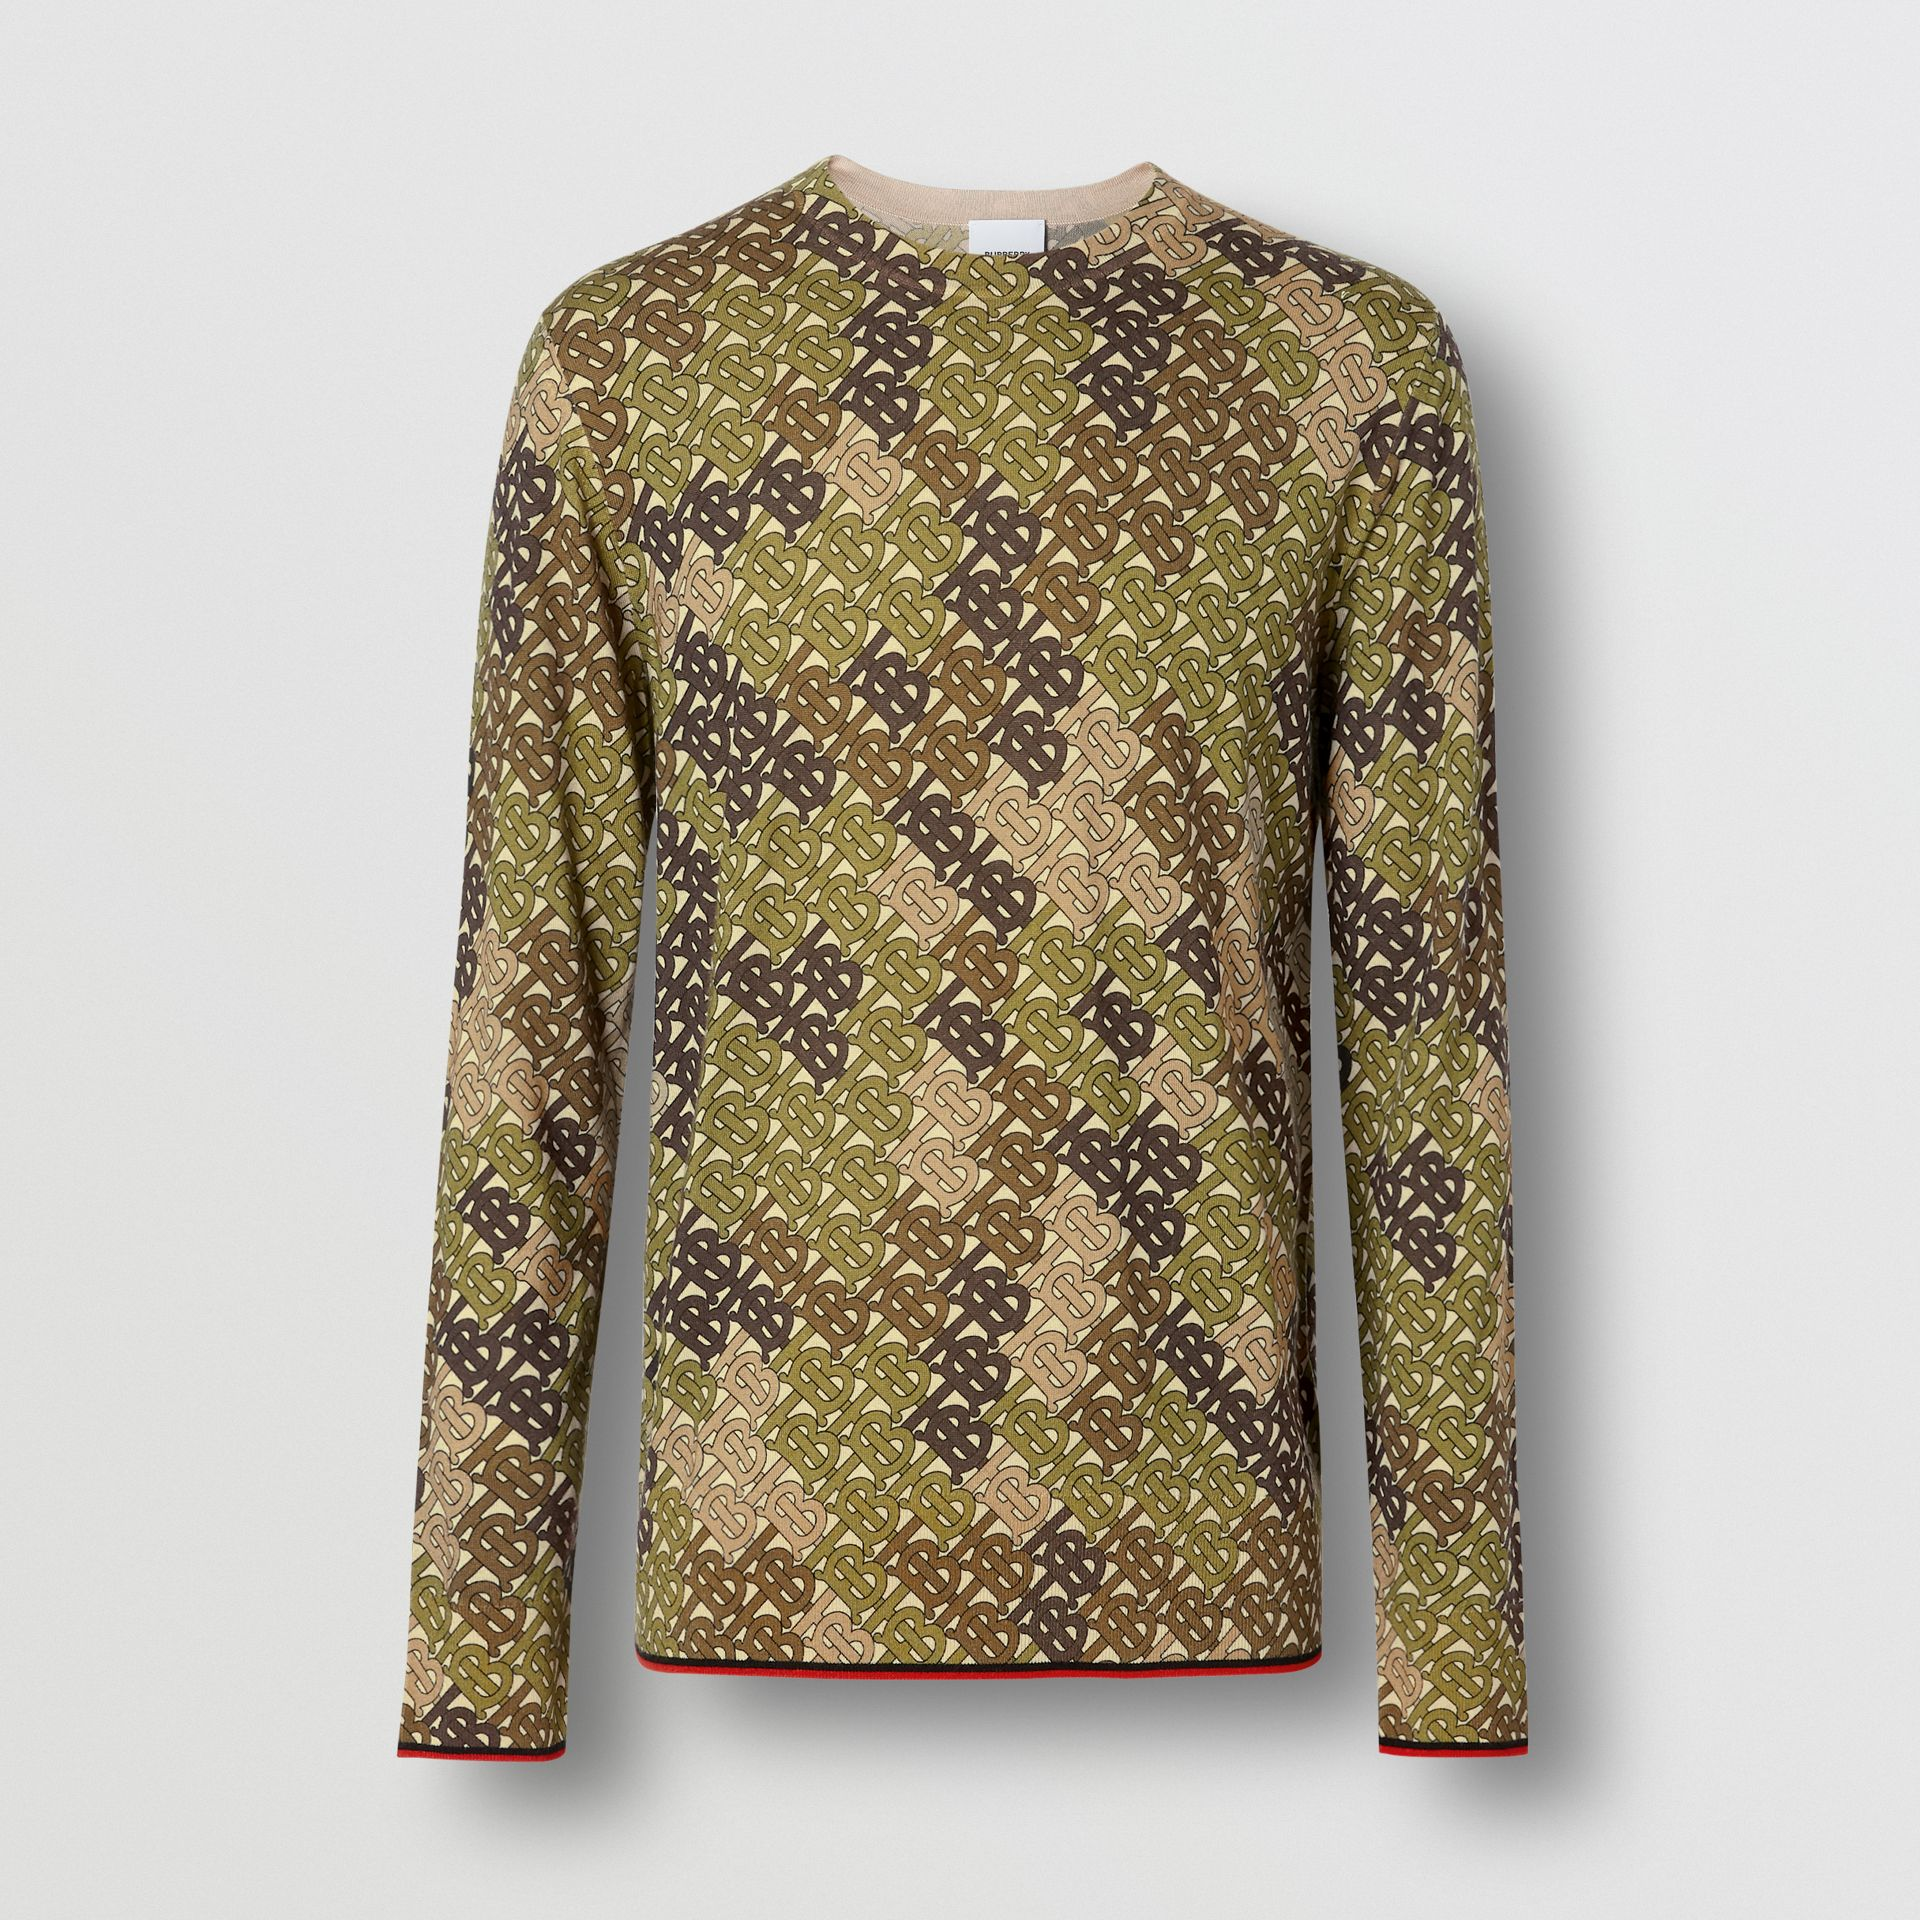 Monogram Print Merino Wool Sweater in Khaki - Men | Burberry Canada - gallery image 3